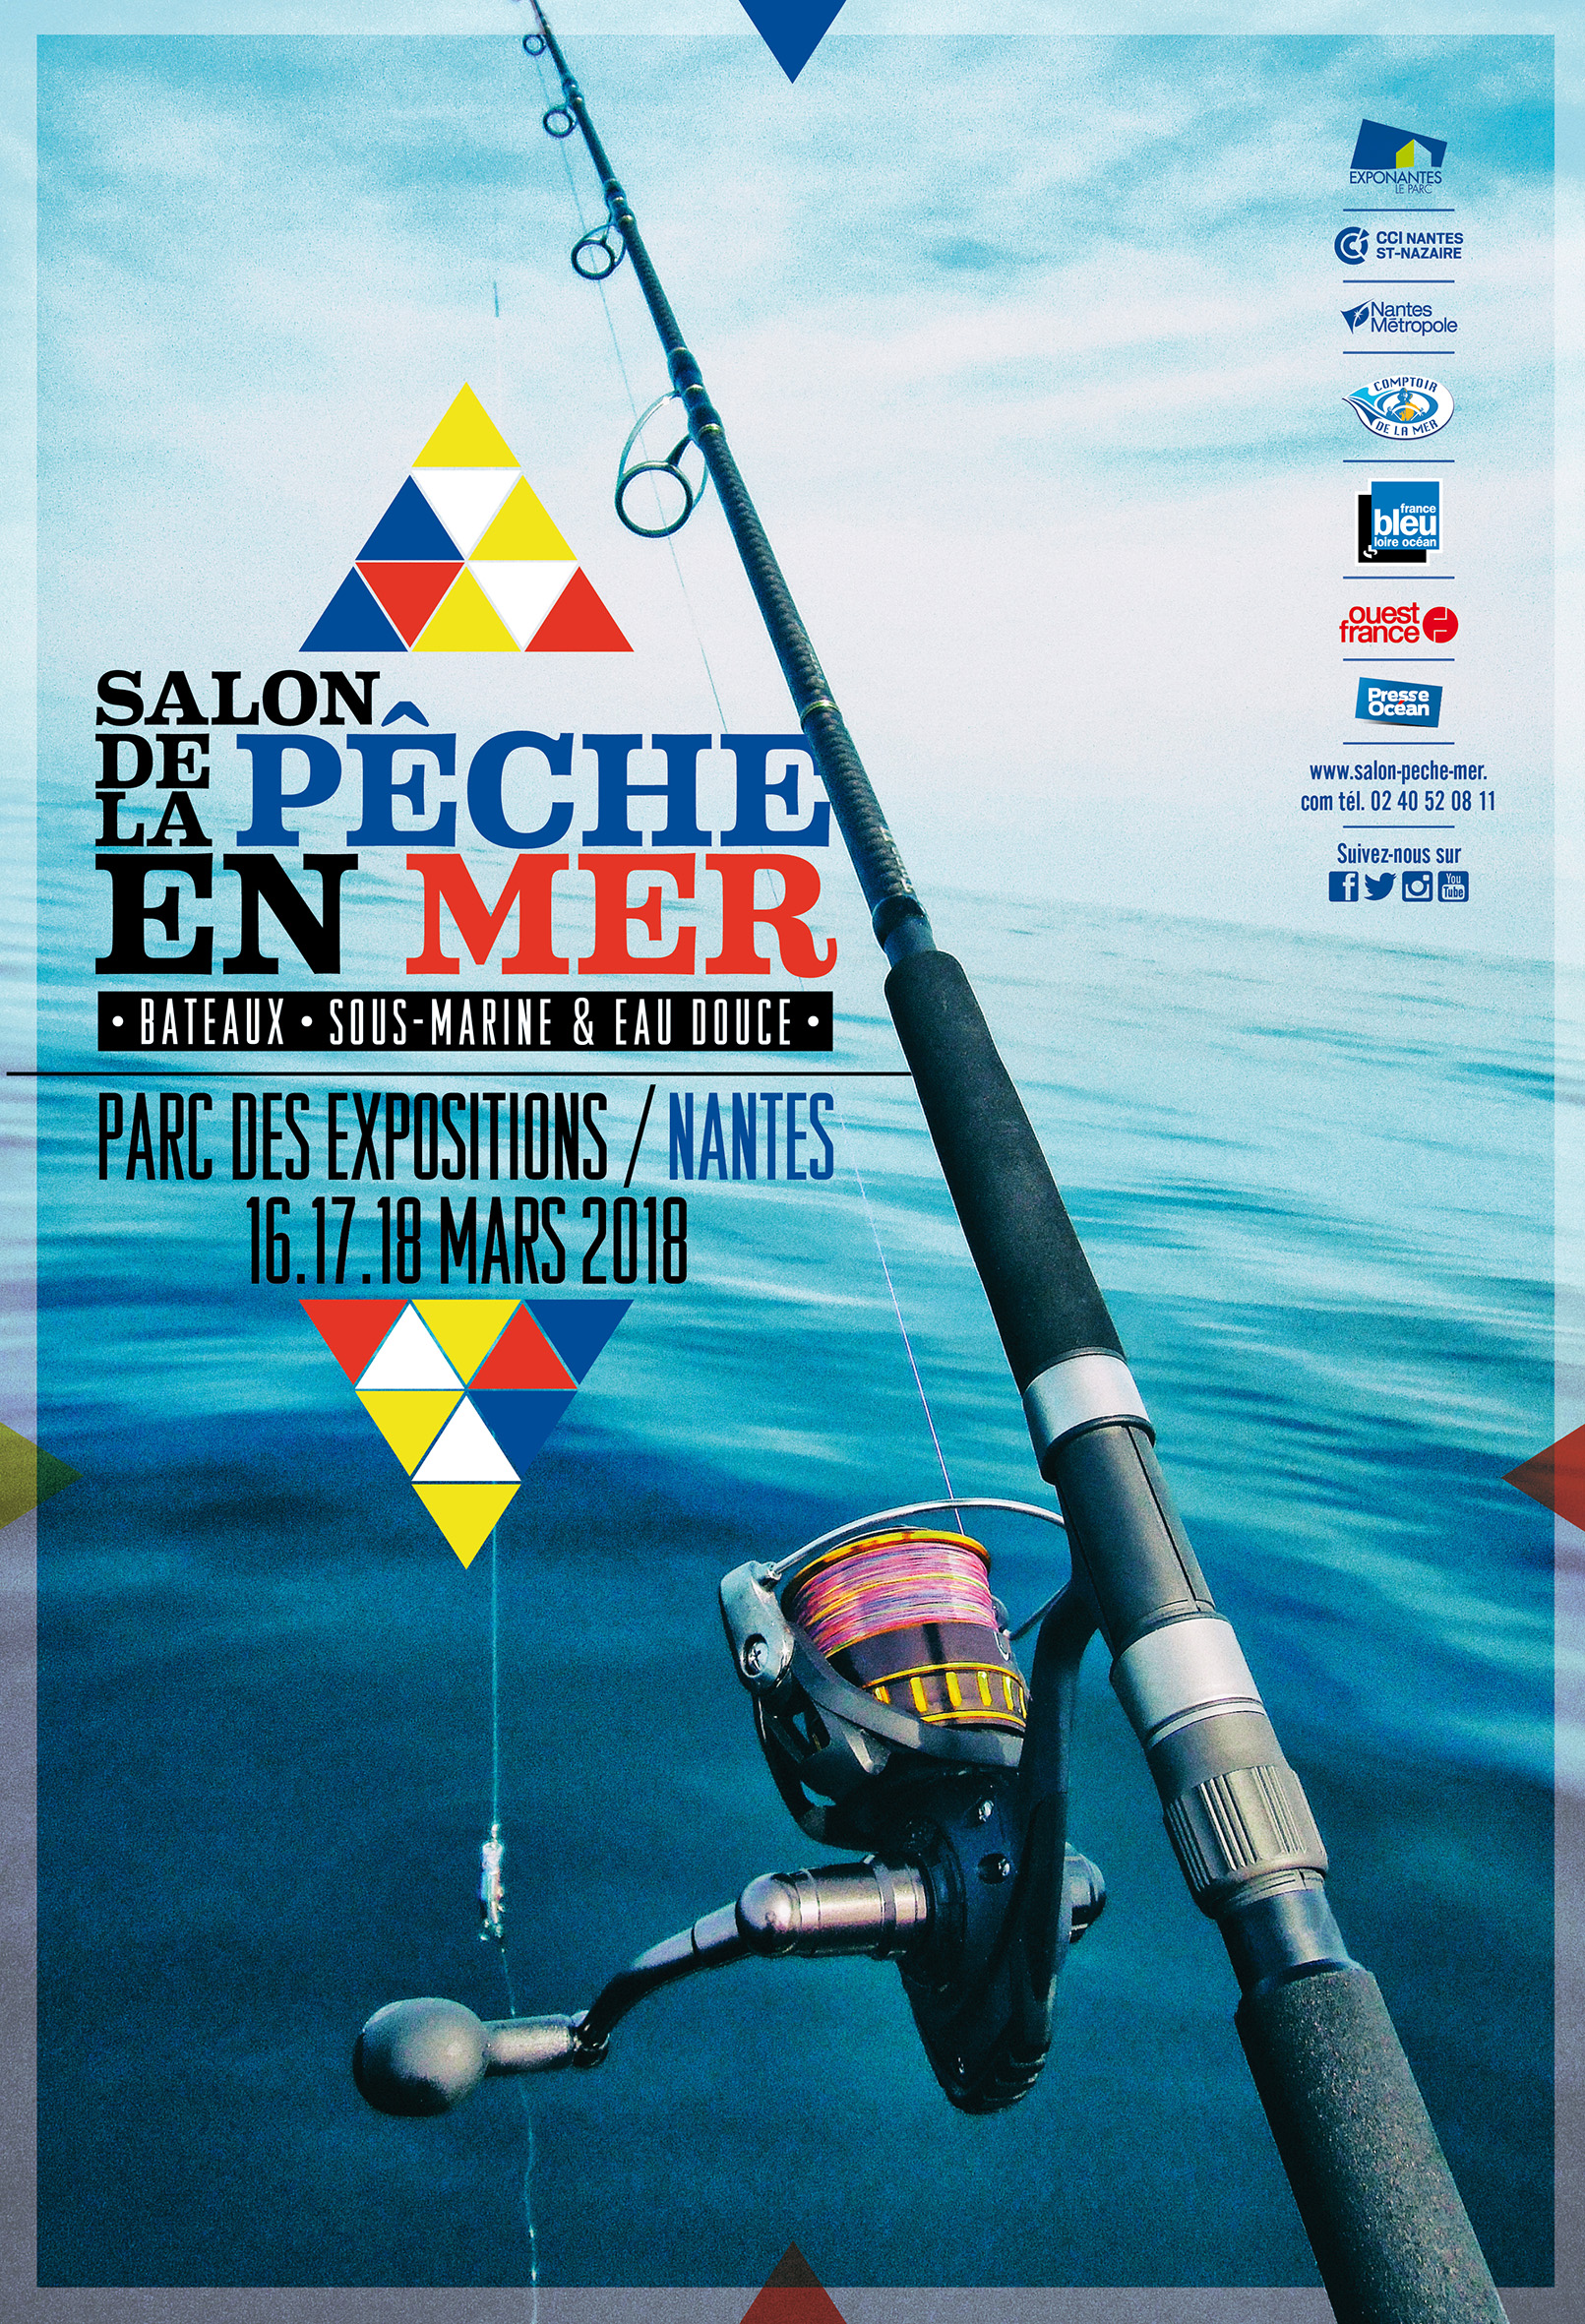 https://static.blog4ever.com/2012/03/678268/affiche-salon-peche-nantes-2018.jpg